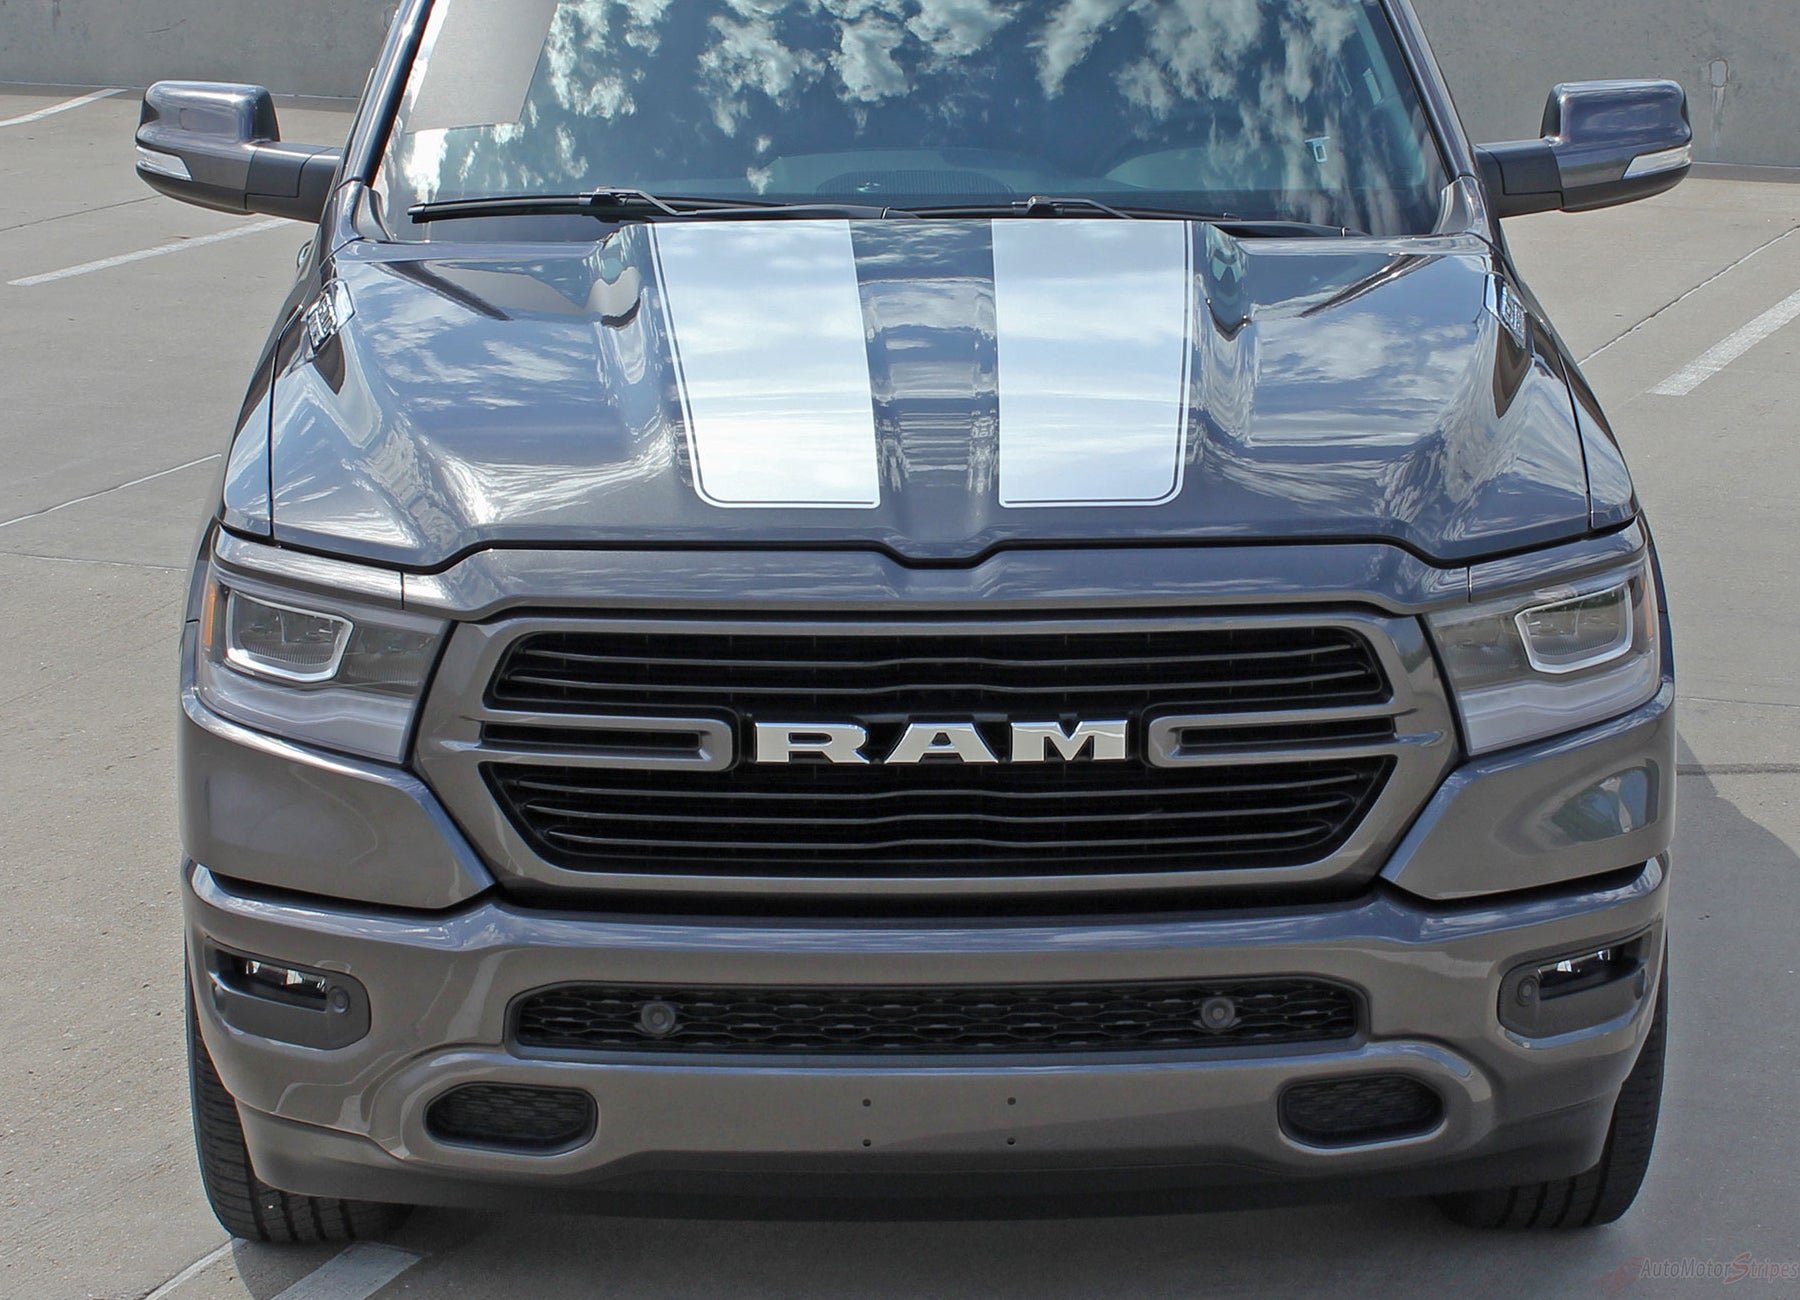 2019 2020 2021 Dodge Ram Hood Racing Stripes Truck Graphic Rally Decals Auto Motor Stripes Decals Vinyl Graphics And 3m Striping Kits